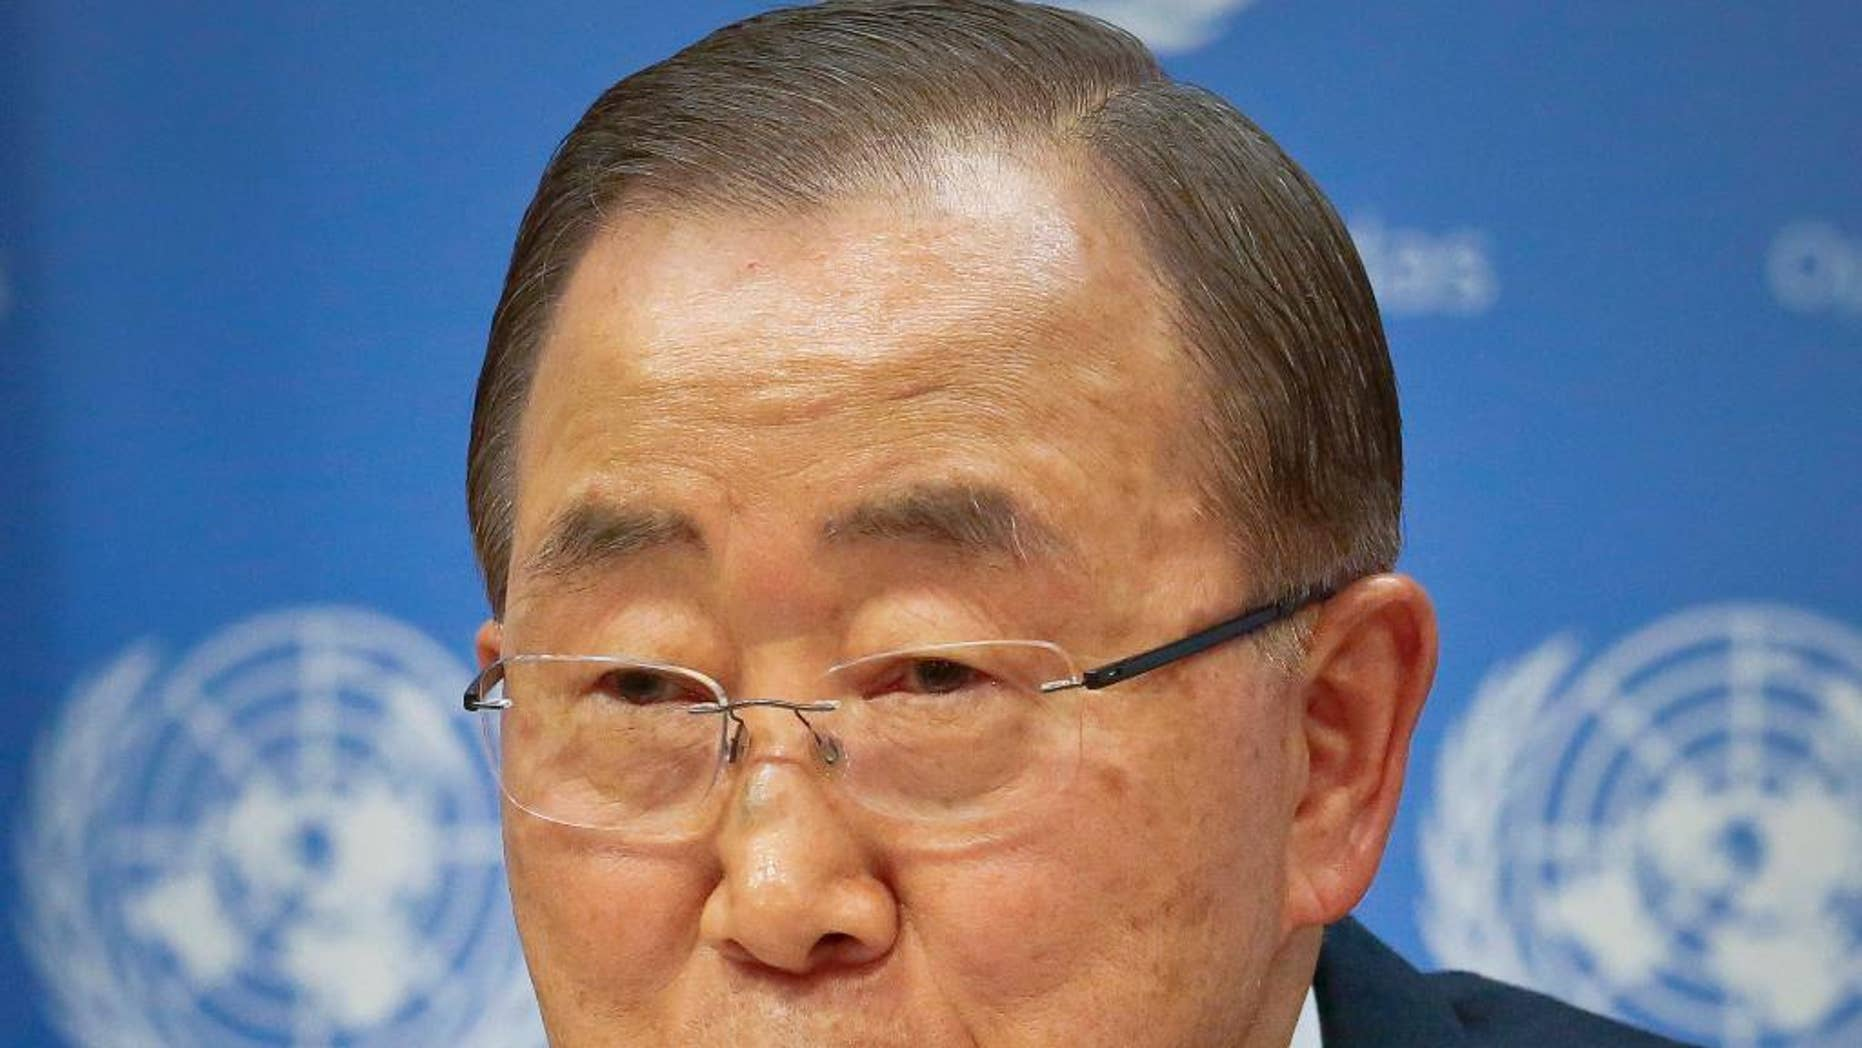 """FILE - In this Friday, Dec. 16, 2016, file photo, United Nations Secretary-General Ban Ki-moon speaks during his final press conference at the U.N. headquarters. North Korea on Friday, Dec. 23, mocked the outgoing UN secretary-general over his apparent ambitions to run for South Korean president, calling him an opportunistic """"chameleon in a human mask"""" who's dreaming a """"hollow dream."""" (AP Photo/Bebeto Matthews, File)"""